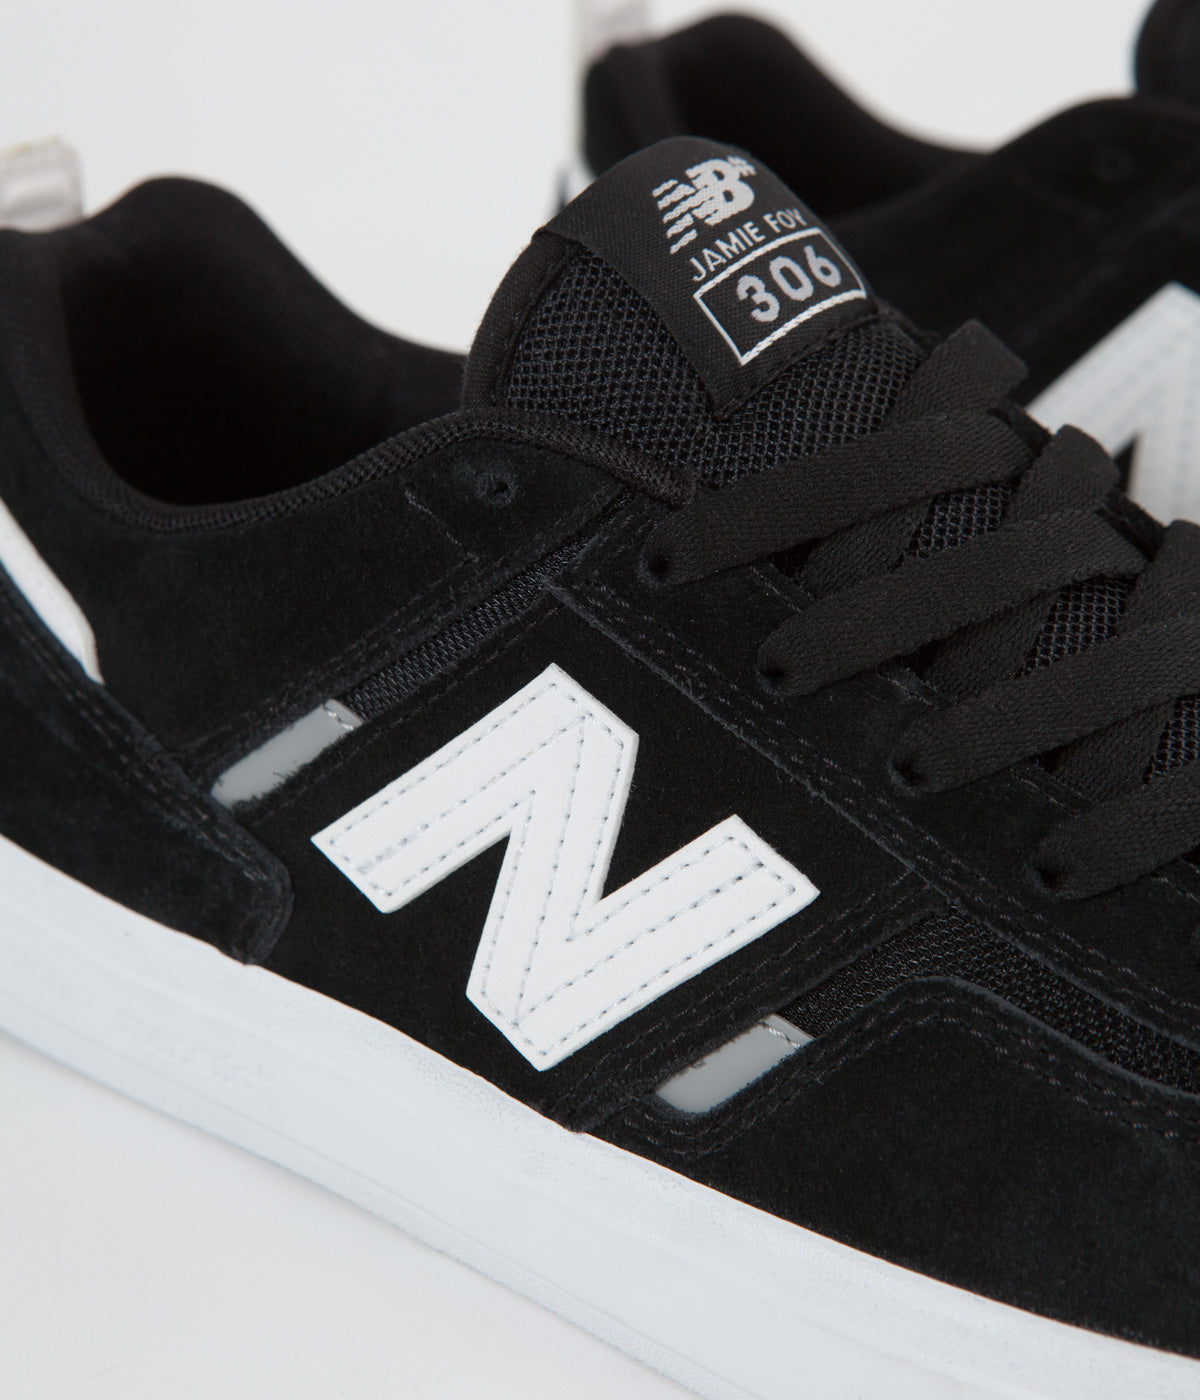 New Balance Numeric 306 Jamie Foy Shoes - Black